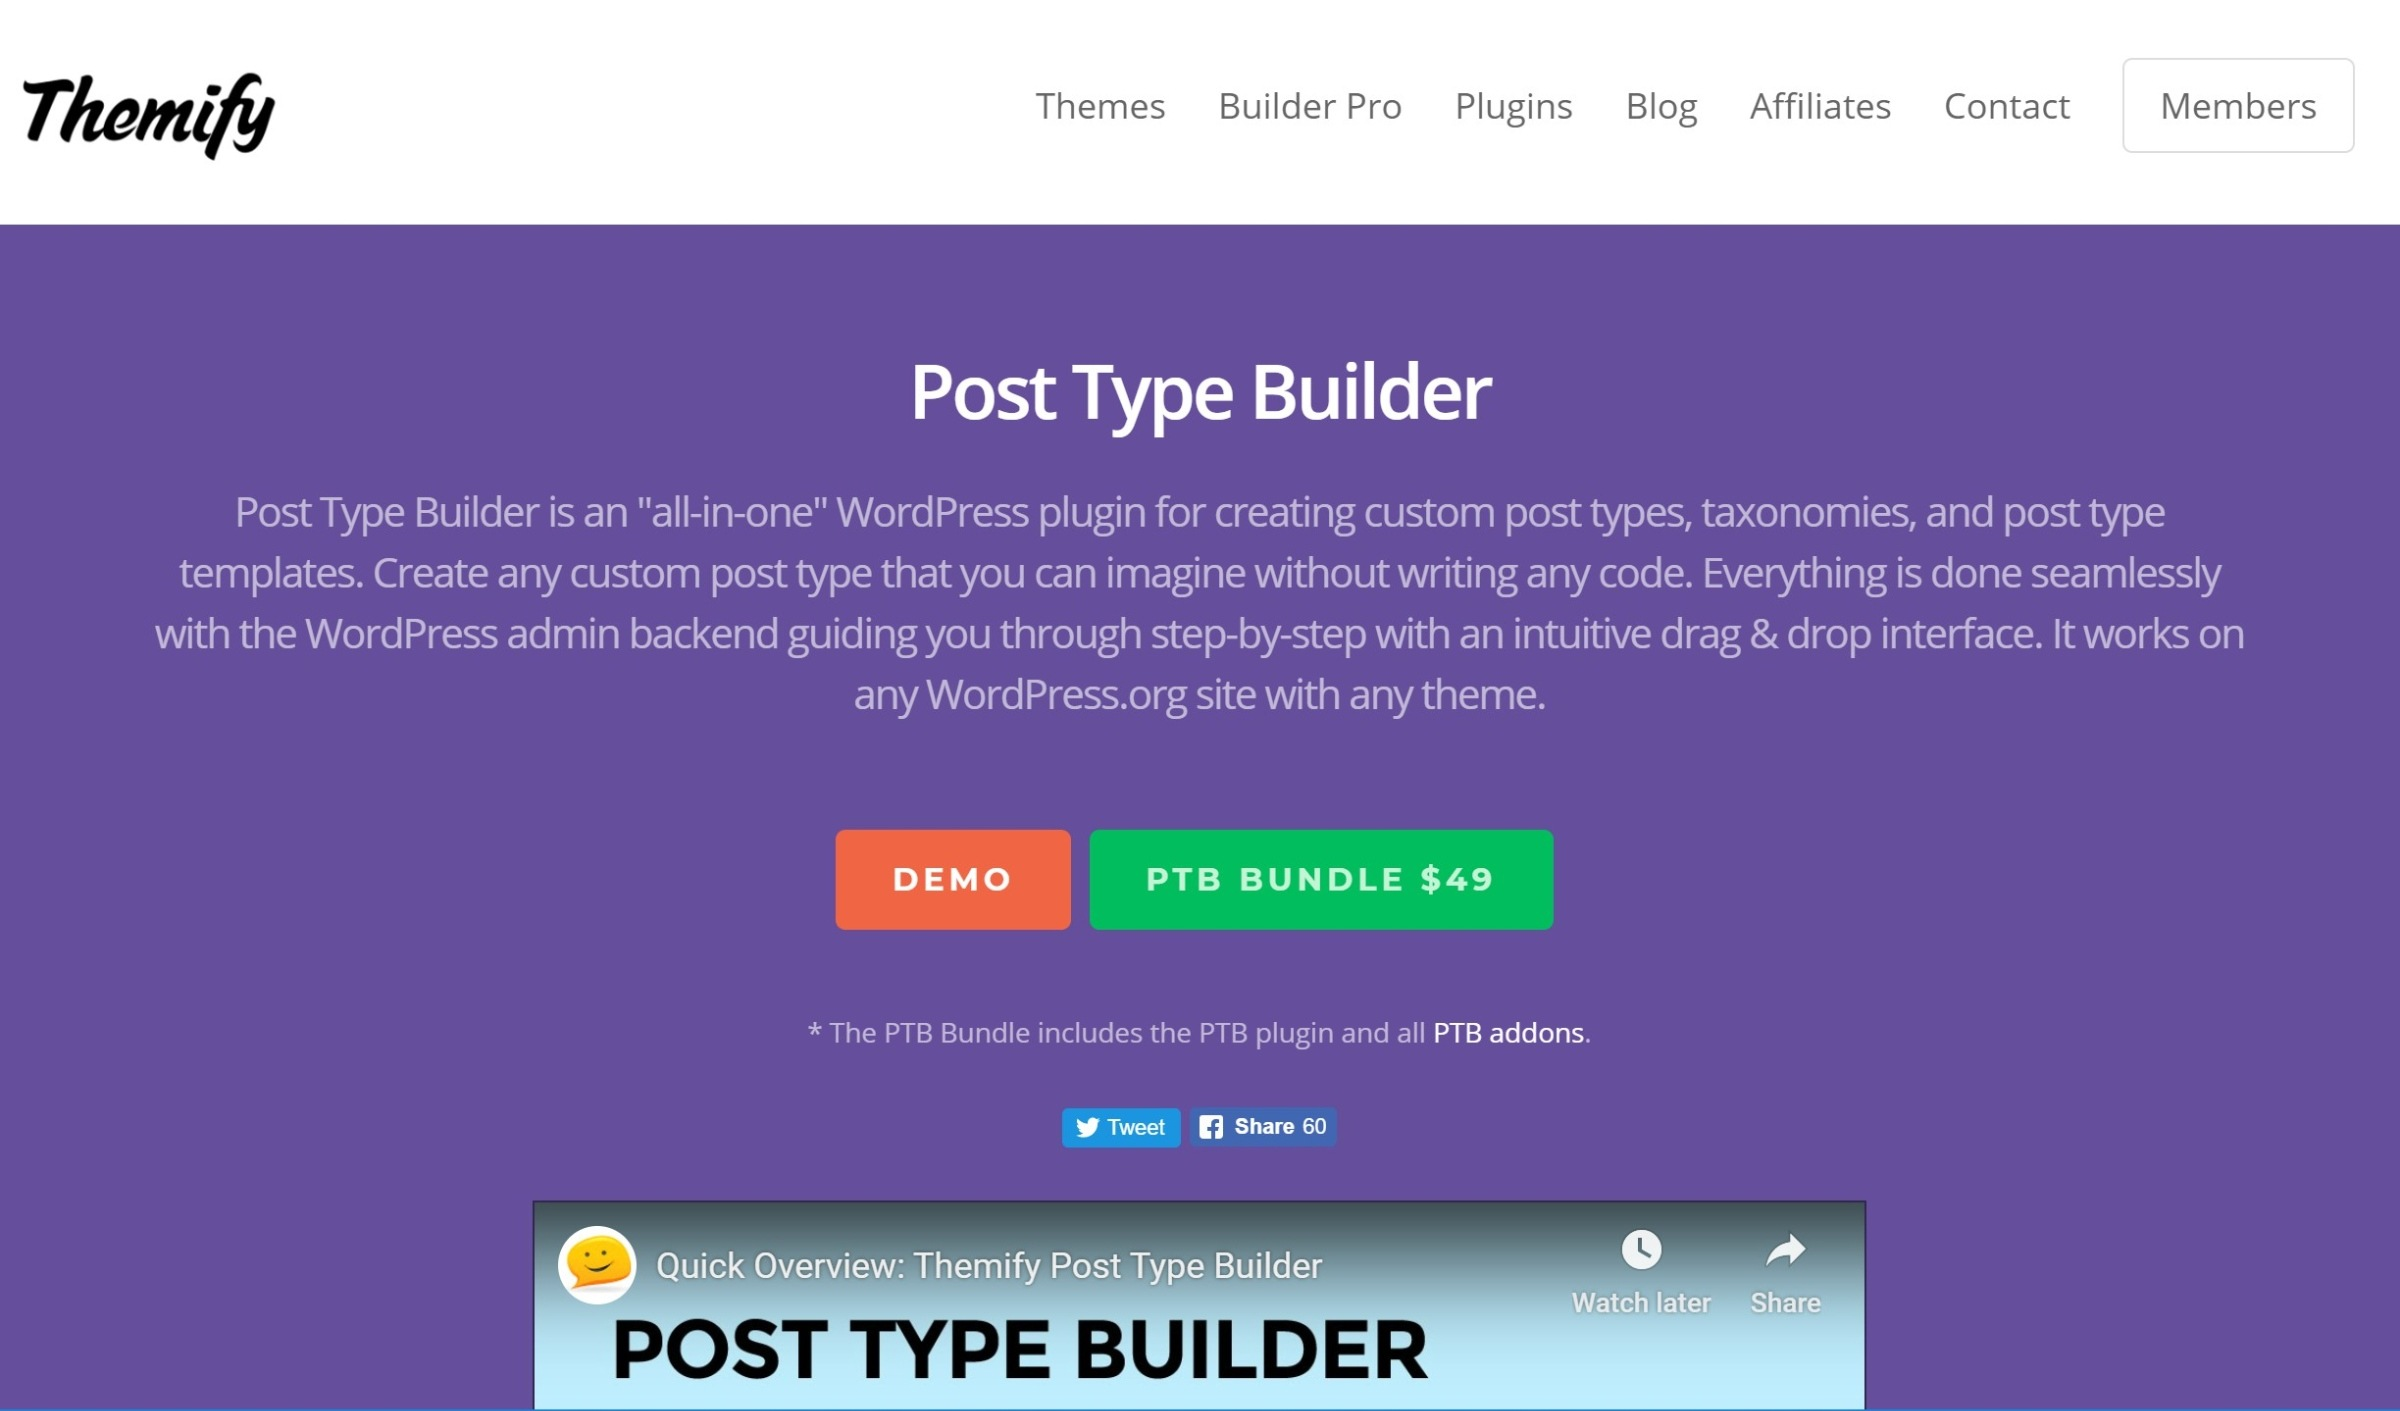 Themify Post Type Builder Plugin